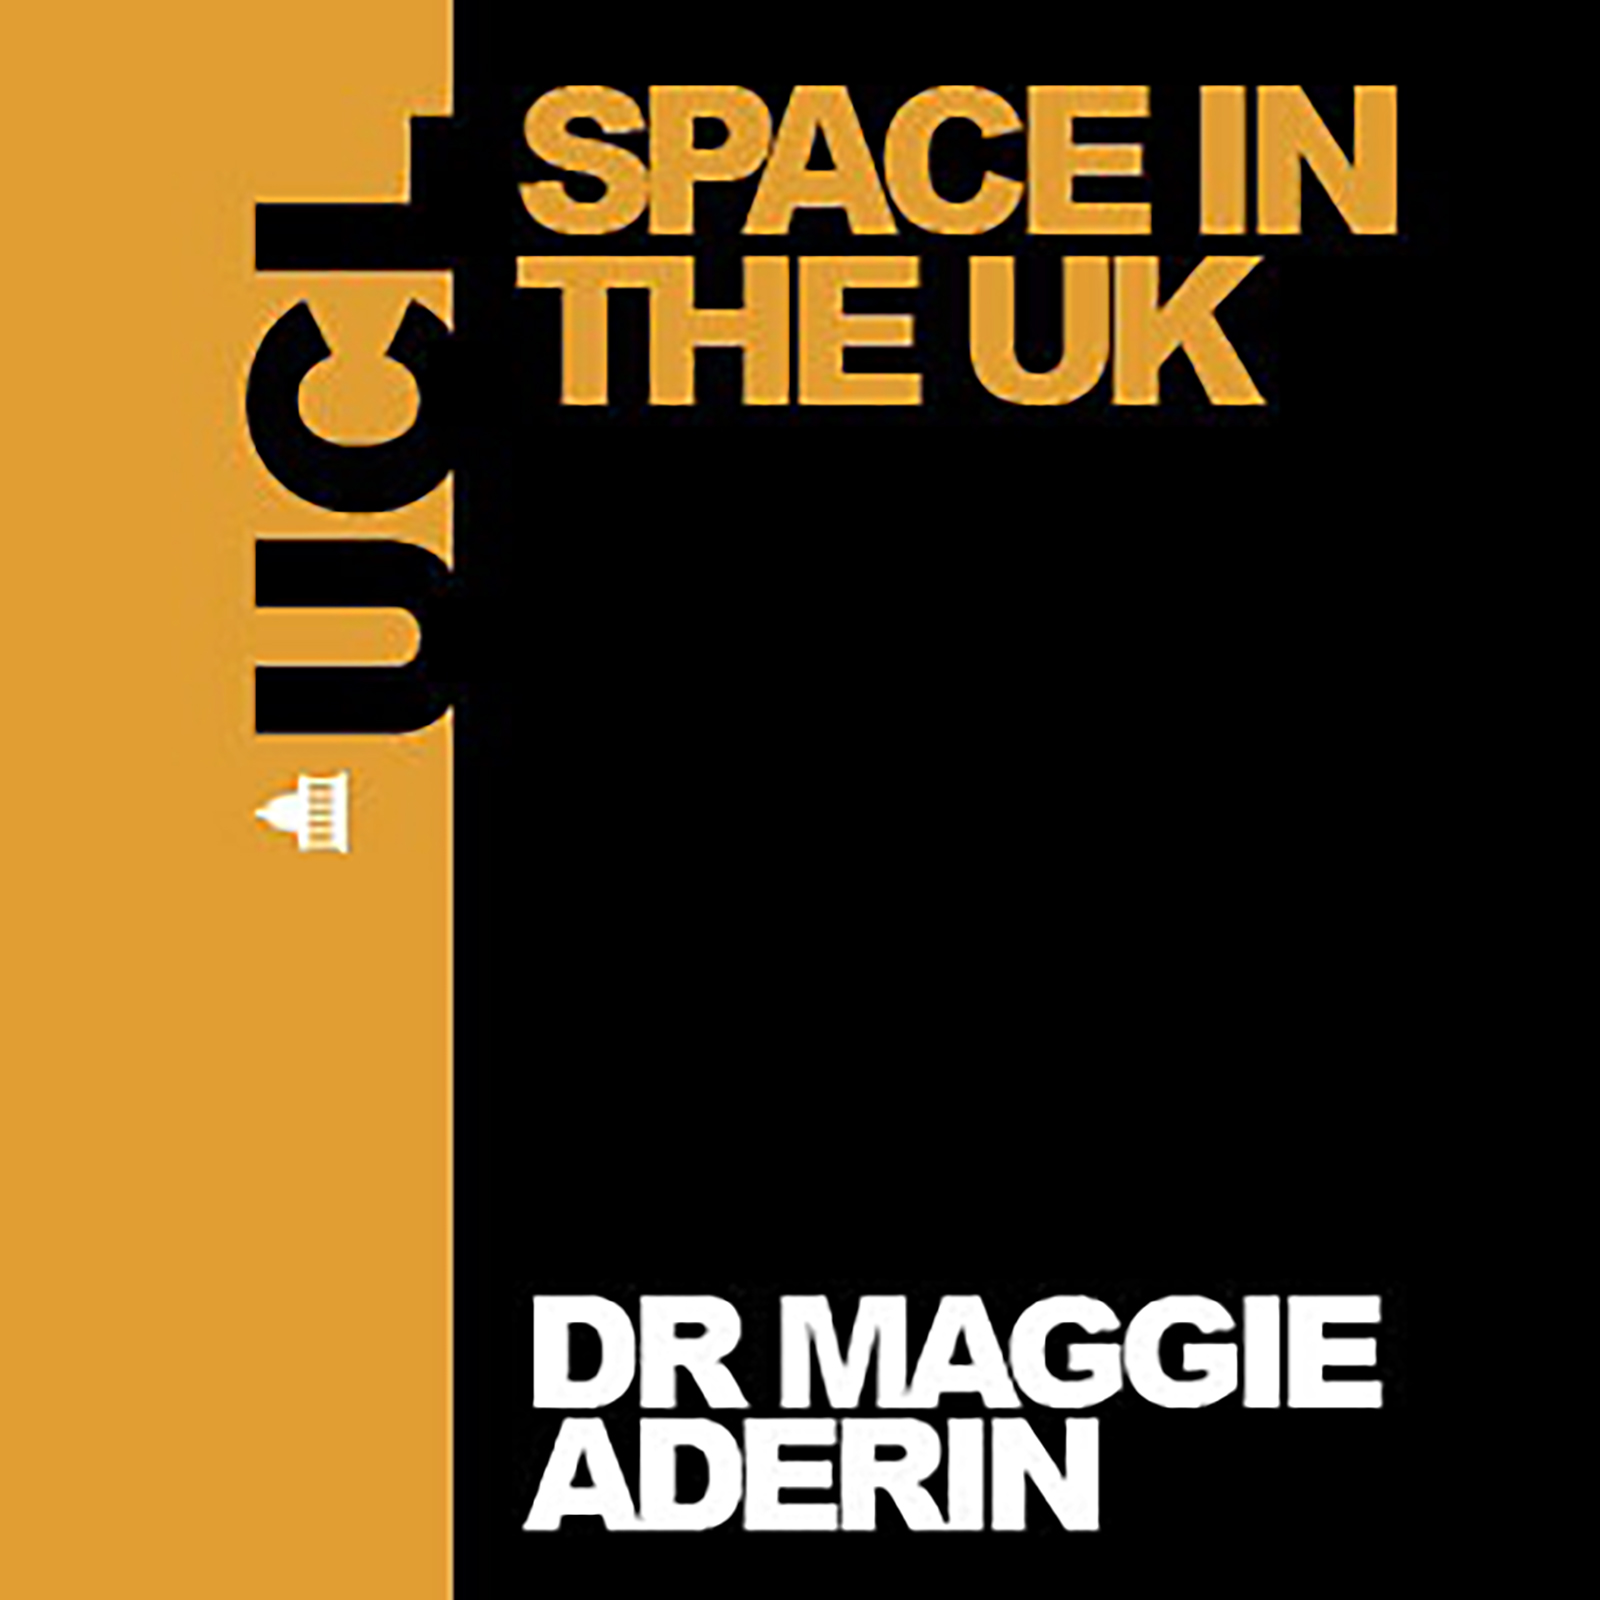 Space in the UK - Video